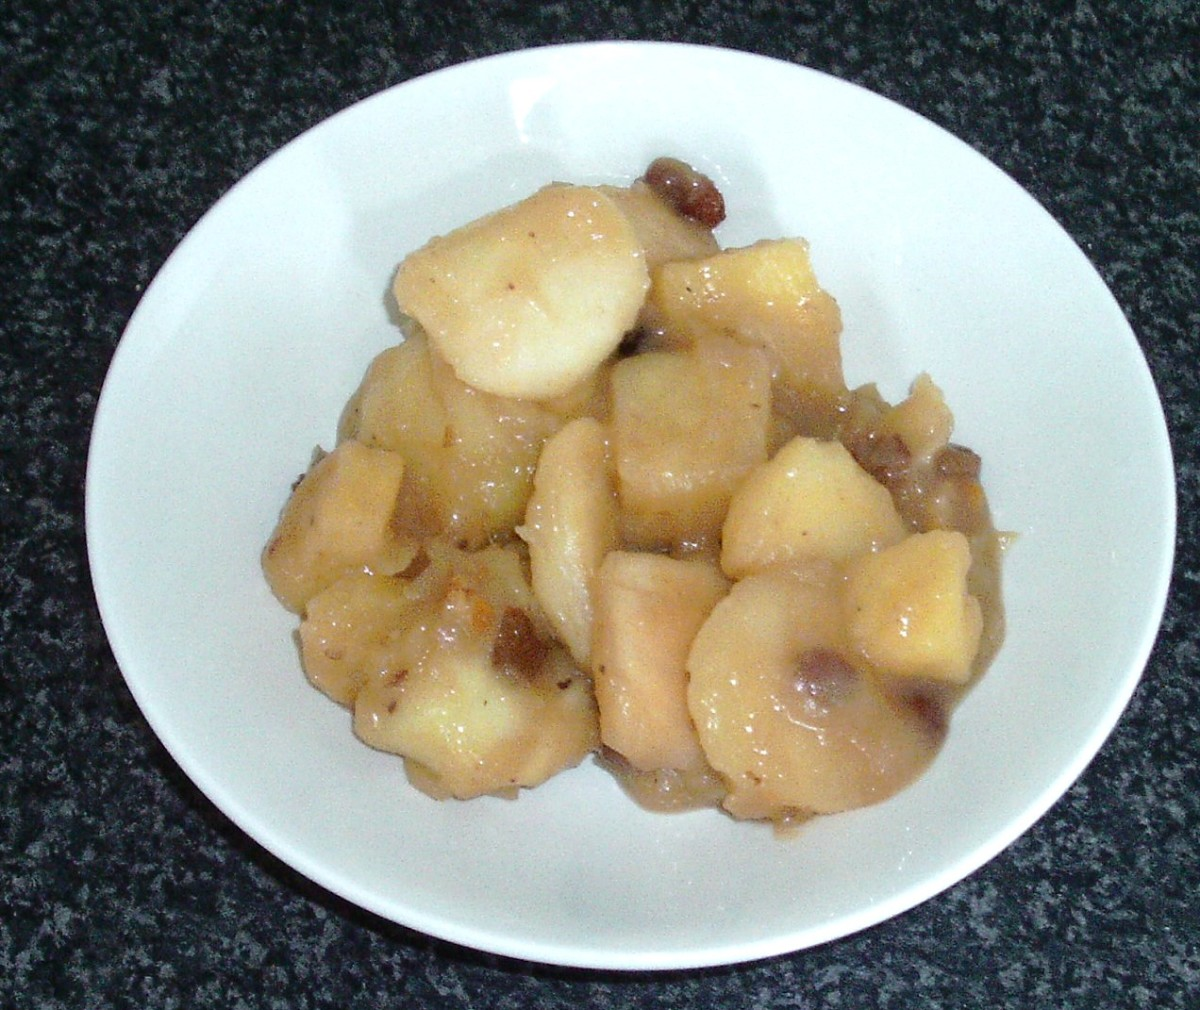 Plated stewed apples, pineapple and mincemeat